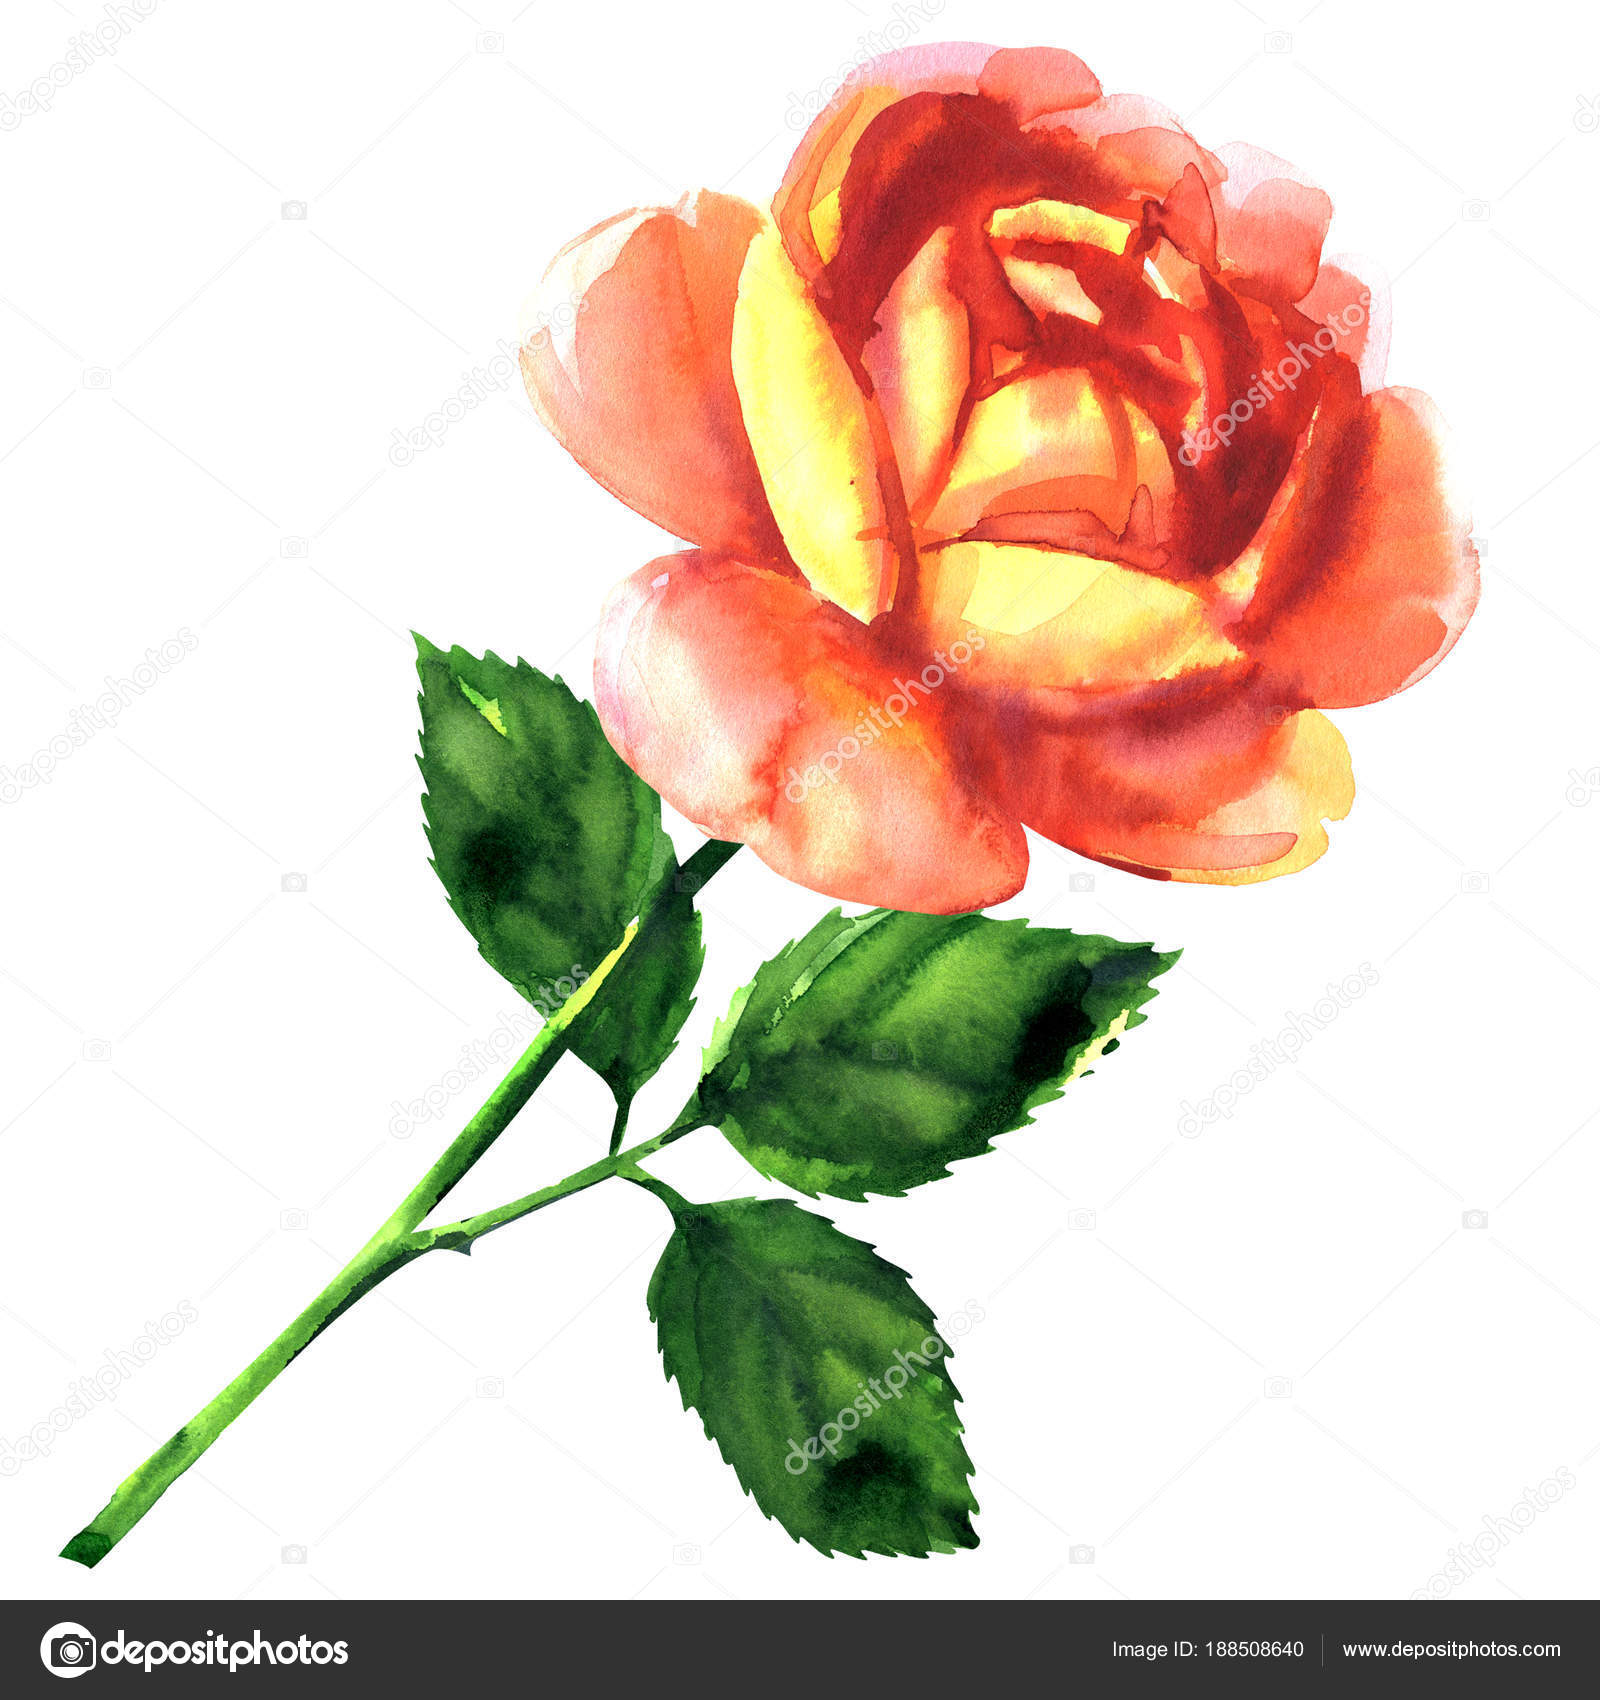 Beautiful Pink Yellow Rose Single Flower With Leaf Isolated Hand Drawn Watercolor Illustration On White Background Photo By Deslns